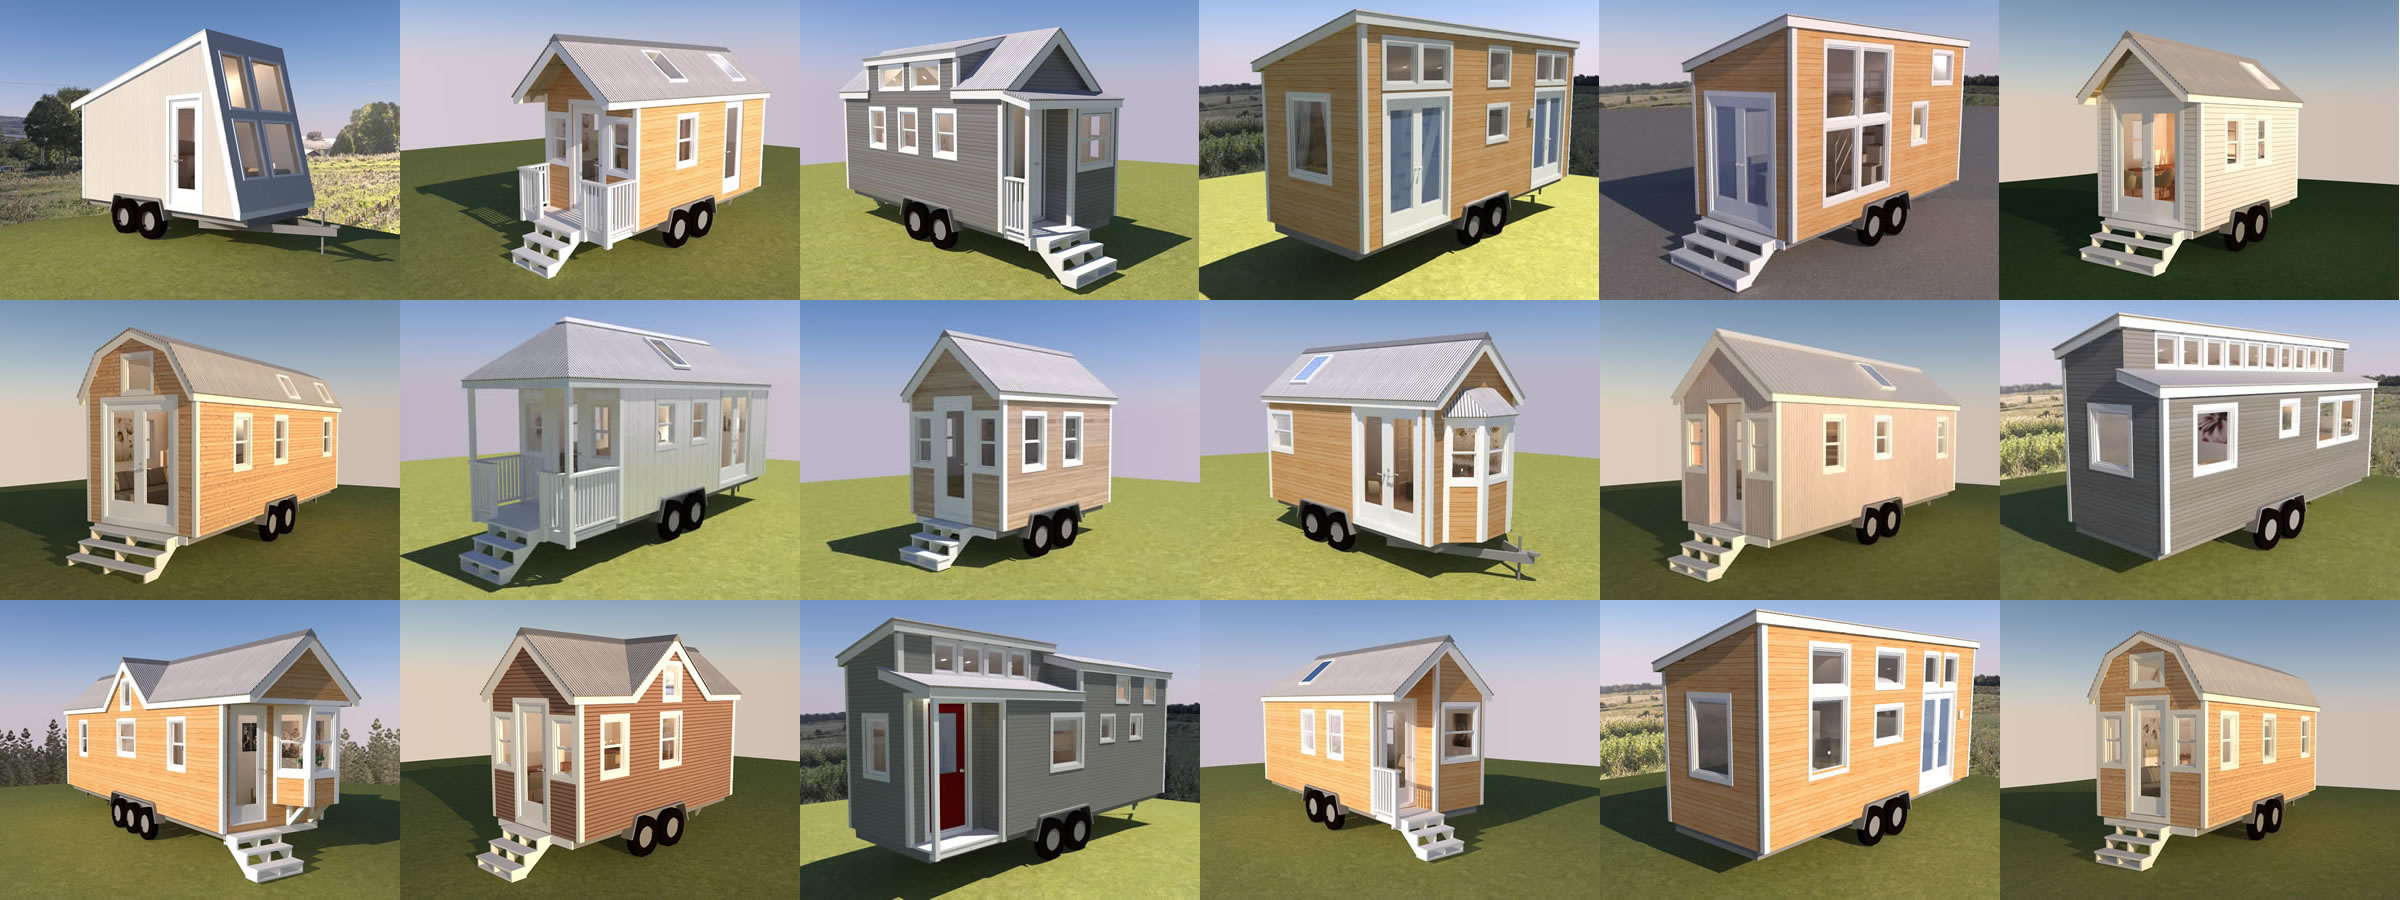 Wonderful Tiny House Design